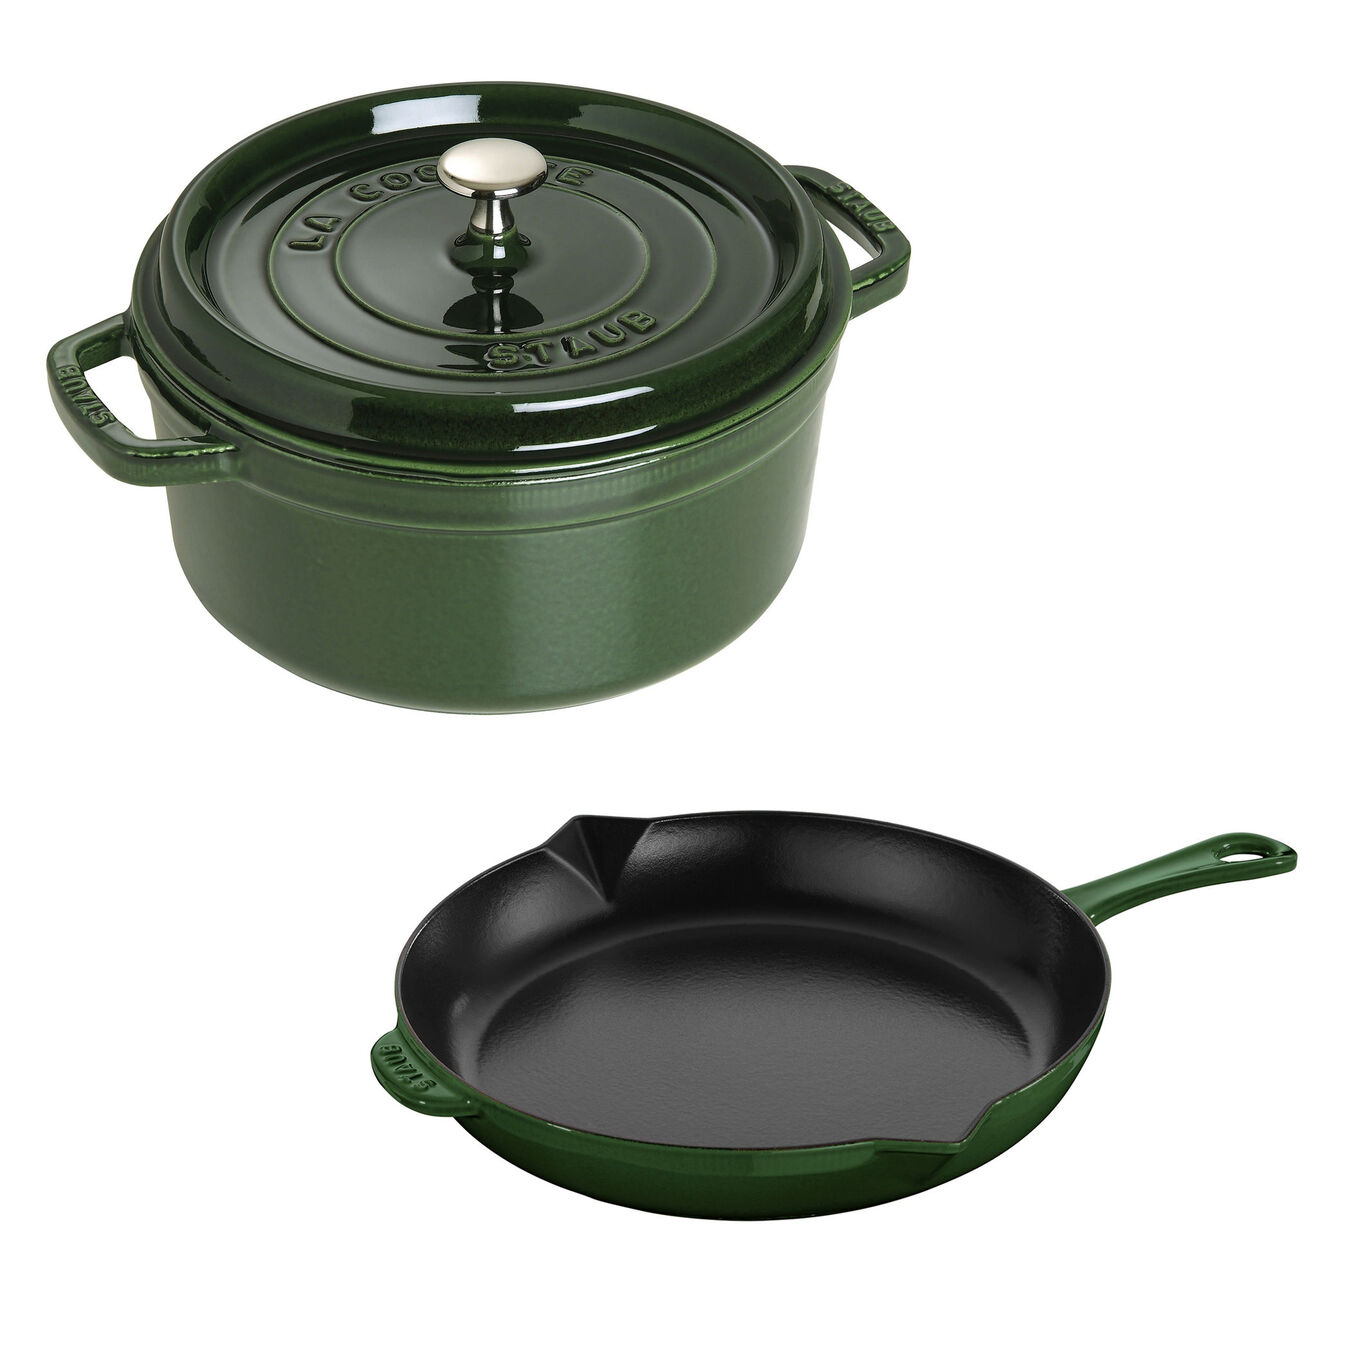 3-pc, Cocotte and Fry Pan Set, basil,,large 1